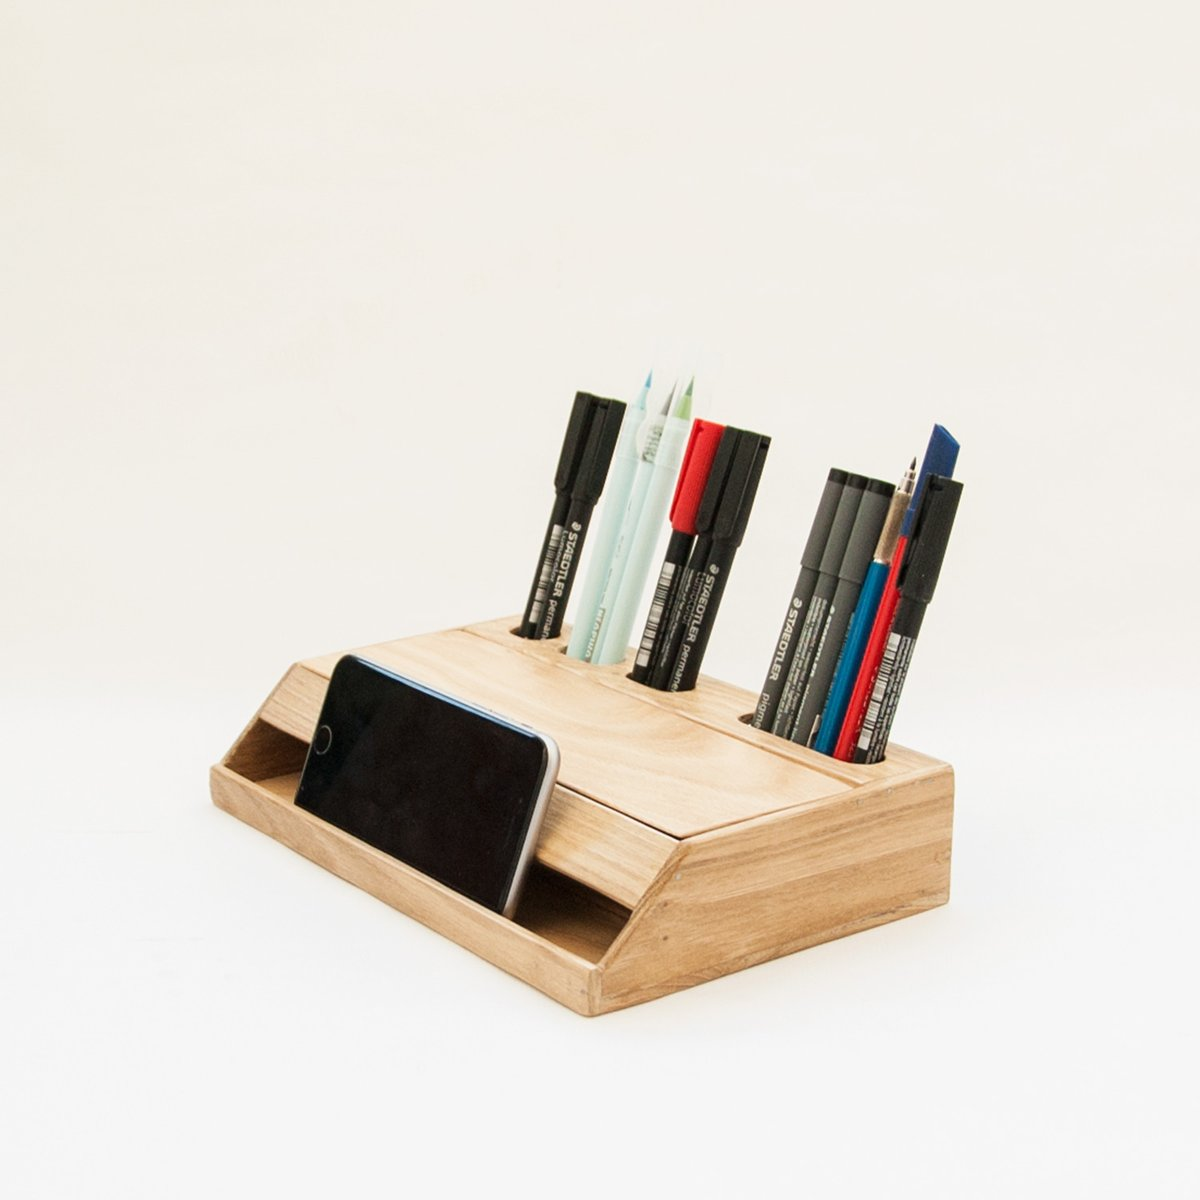 Wood Desk Organizer Set Handmade Estuche Wooden Desk Organizer And Smartphone